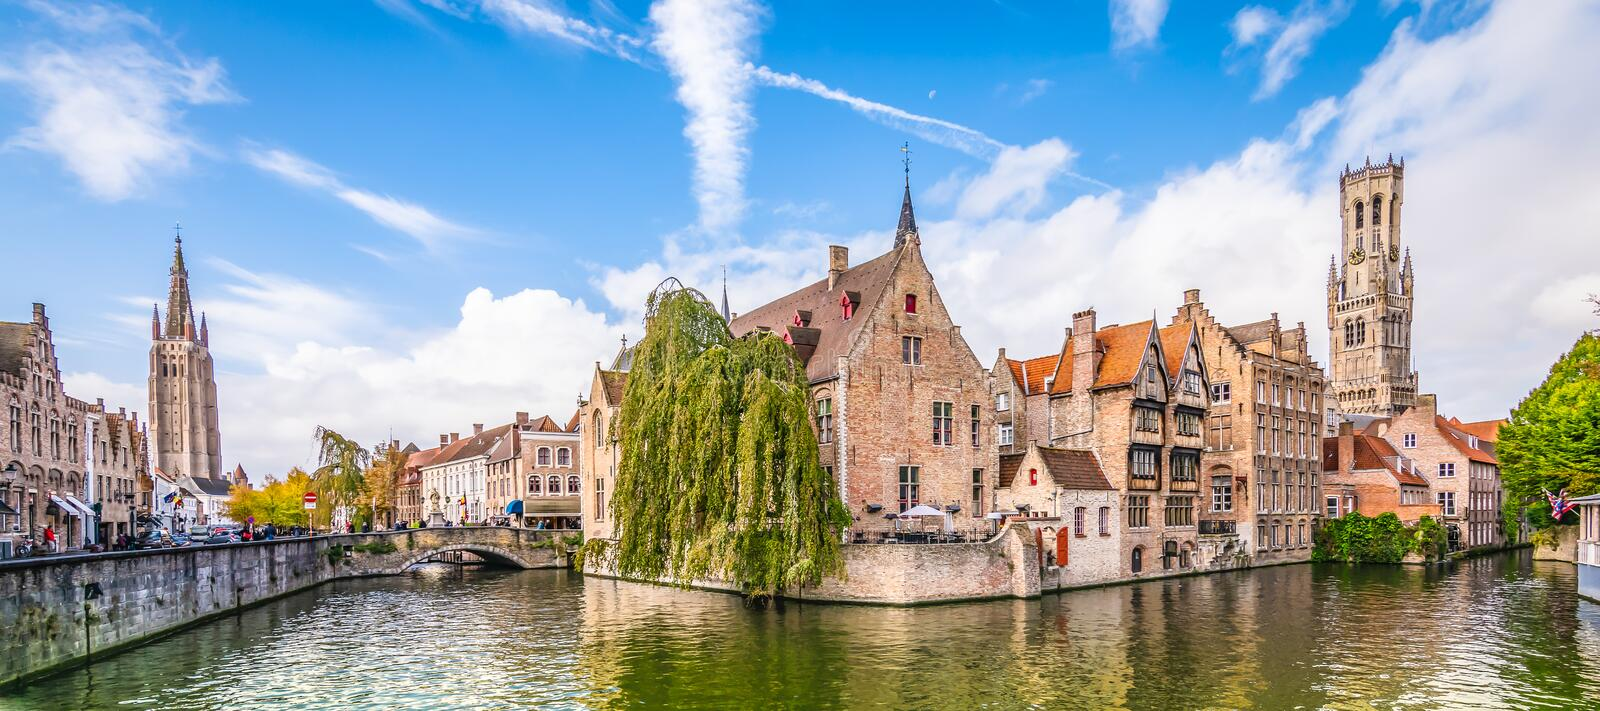 Panoramic city view Belfry tower and famous canal in Bruges, Belgium. Popular view point with belgian brick buildings along the canal. Church and belfry tower royalty free stock photography